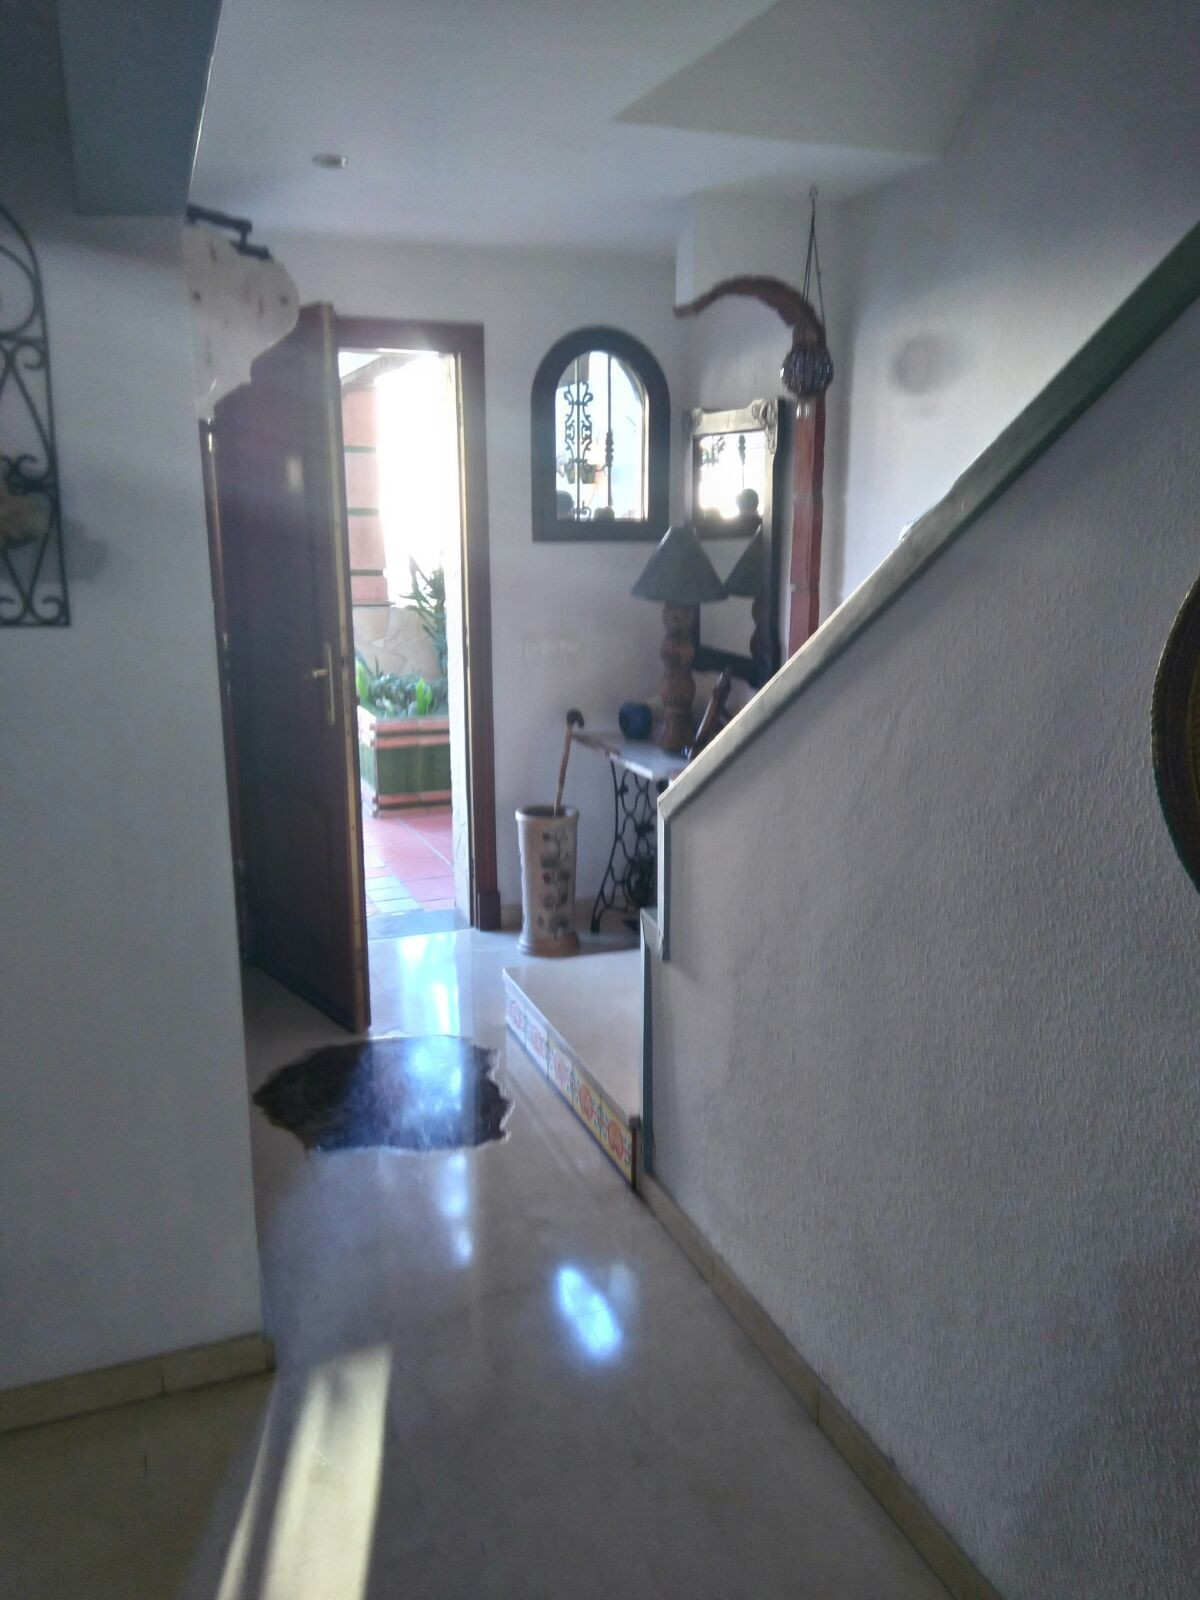 3 Bedroom Townhouse for sale Estepona